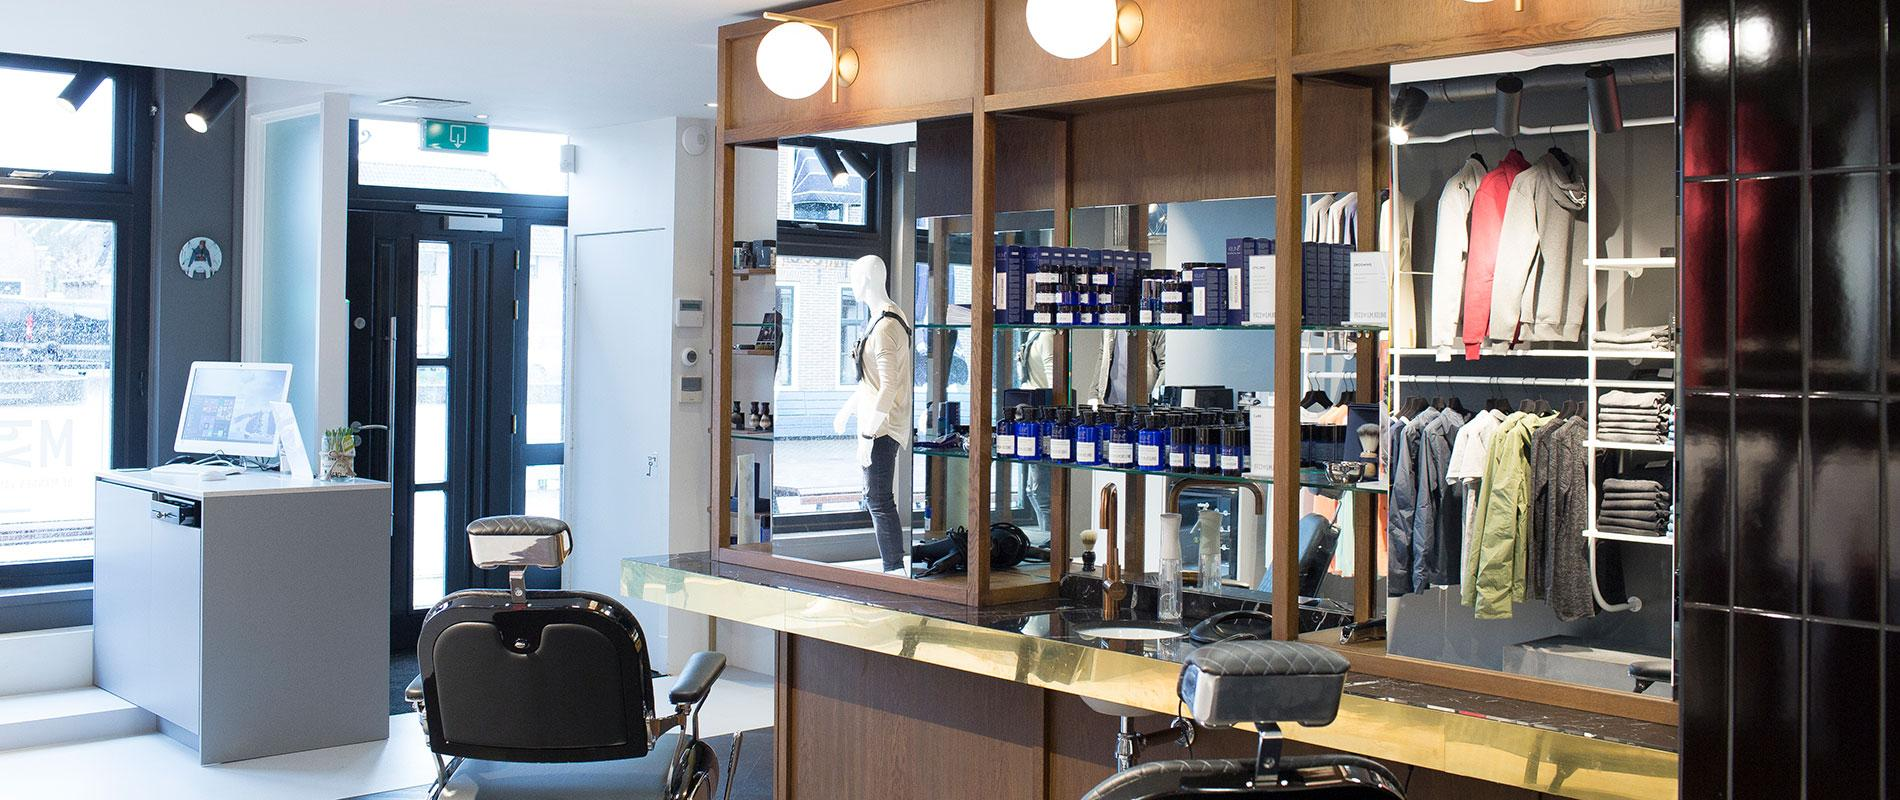 Barbershop & Men's fashion Mannen van den Berg, Grou